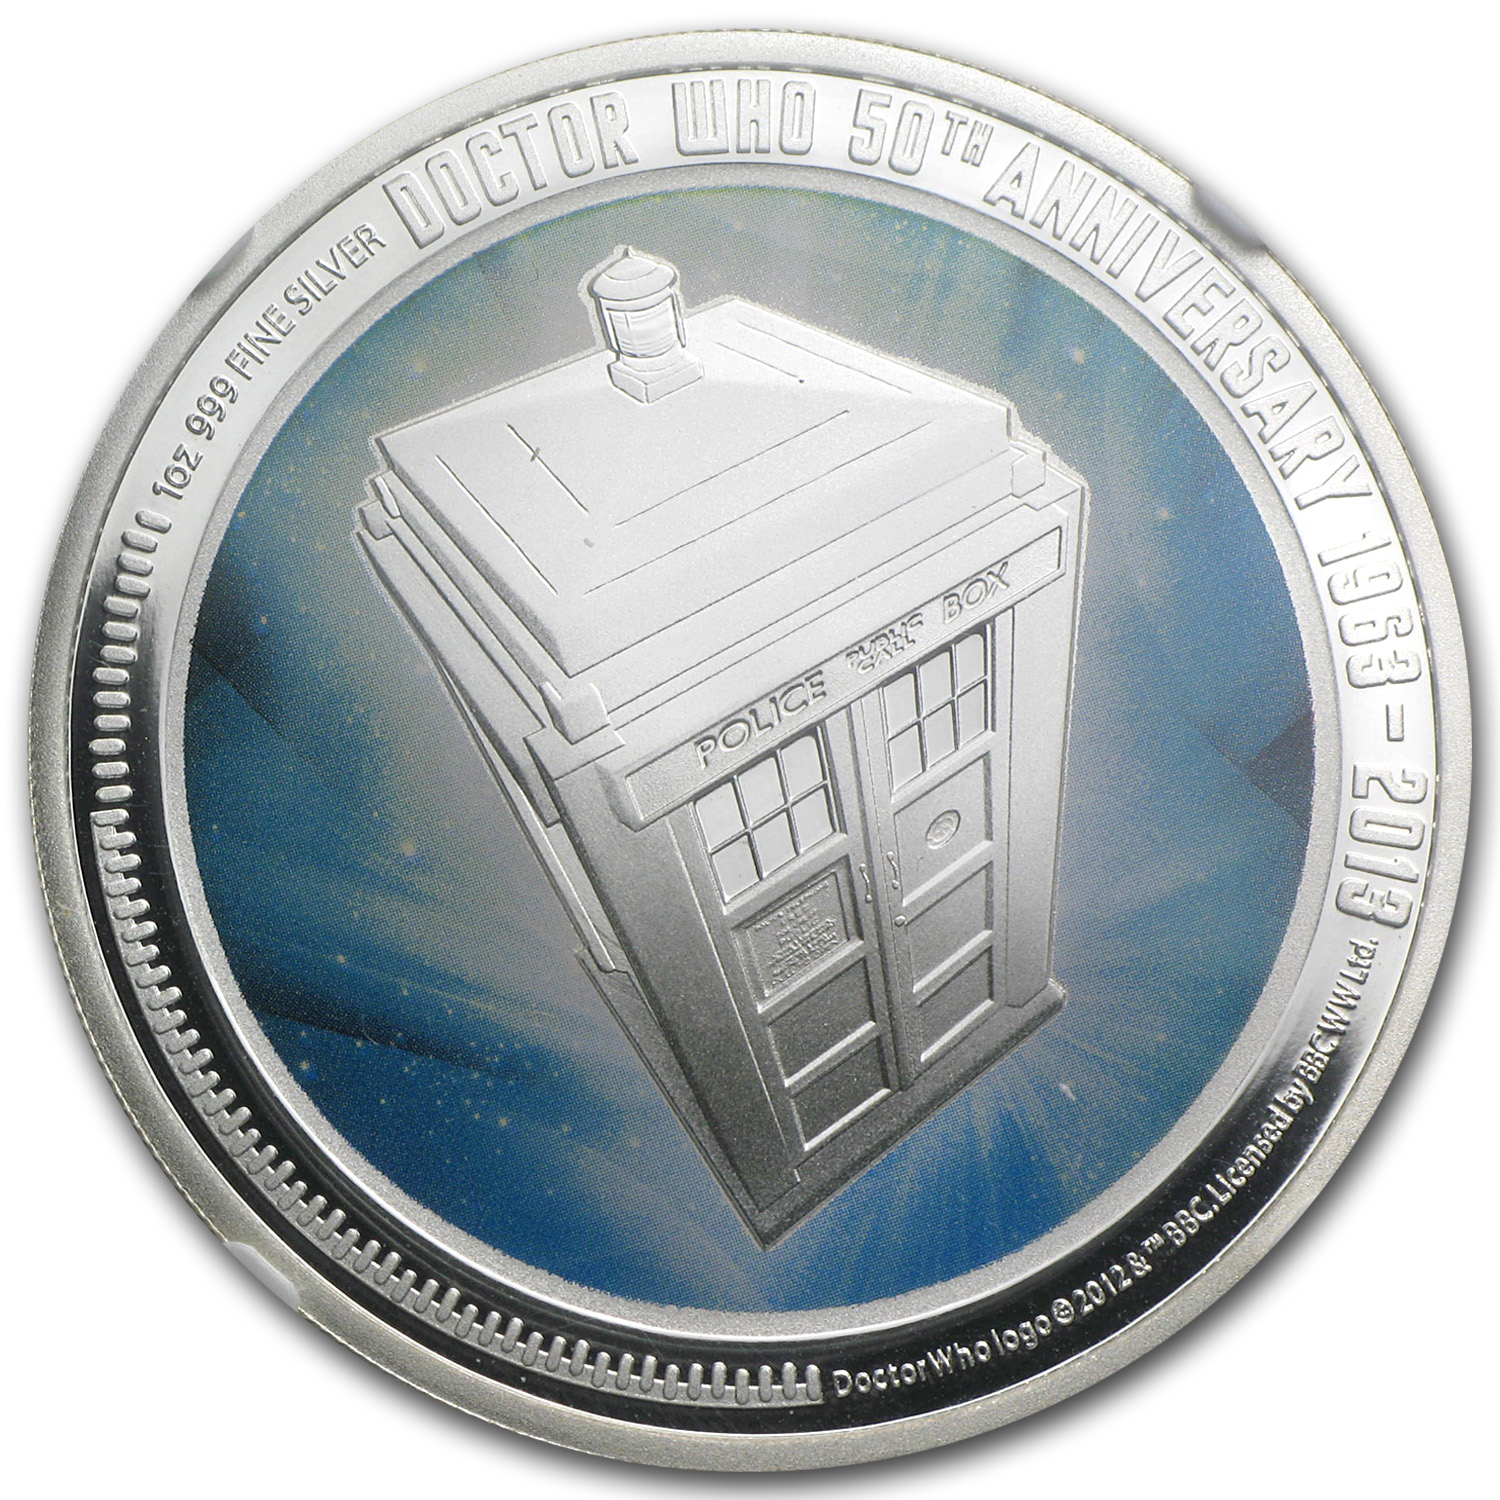 2013 1 oz Silver Niue $2 Doctor Who 50th Anniversary PF-70 NGC